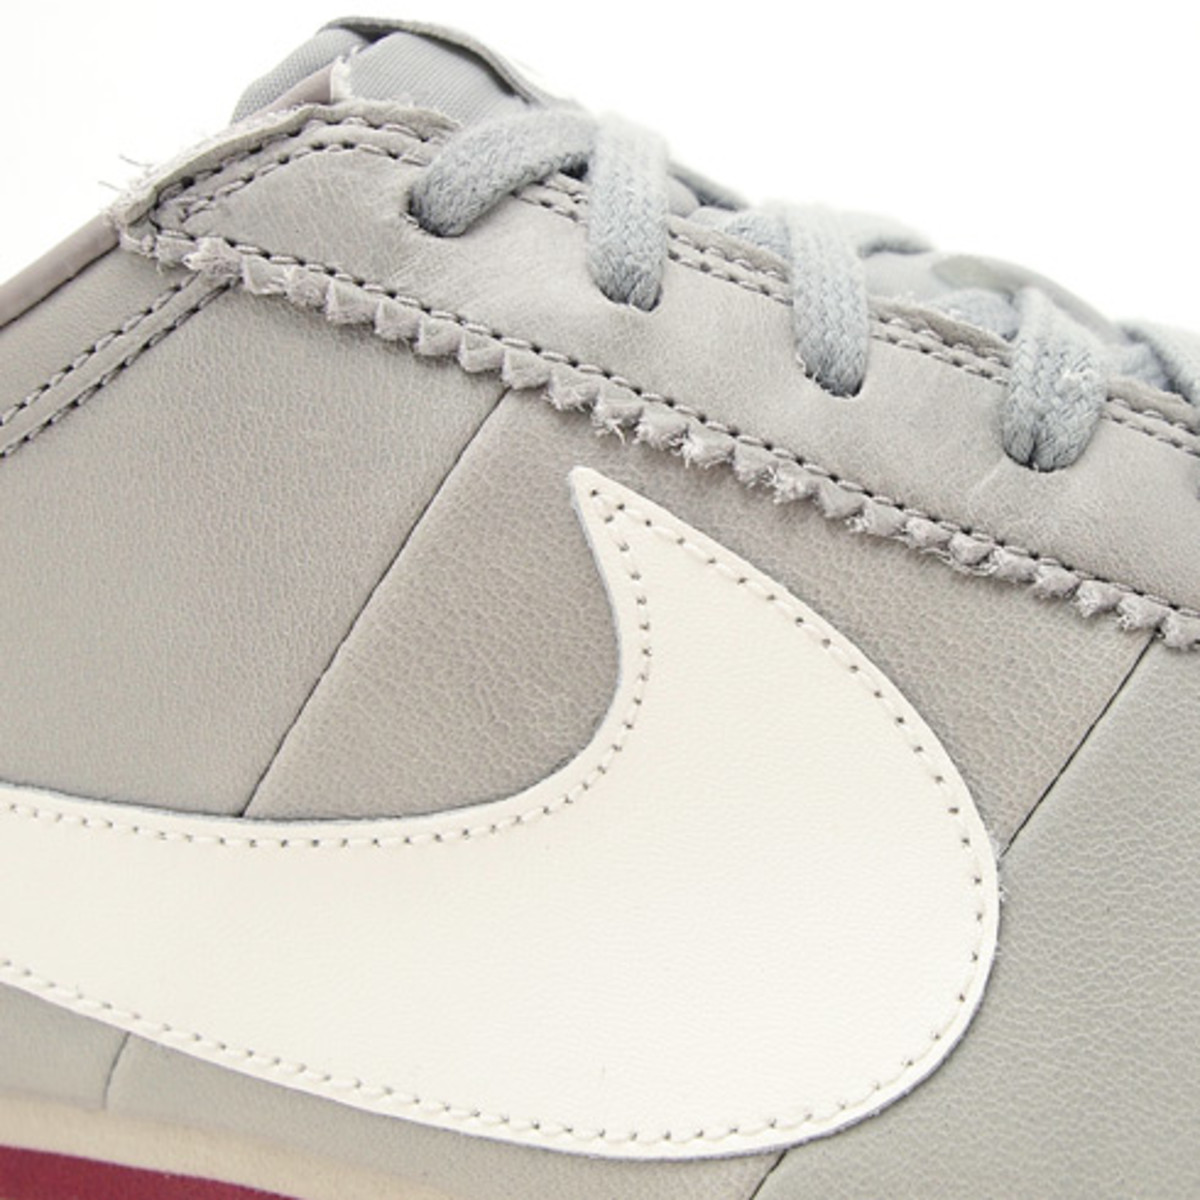 nike-cortez-classic-og-leather-11